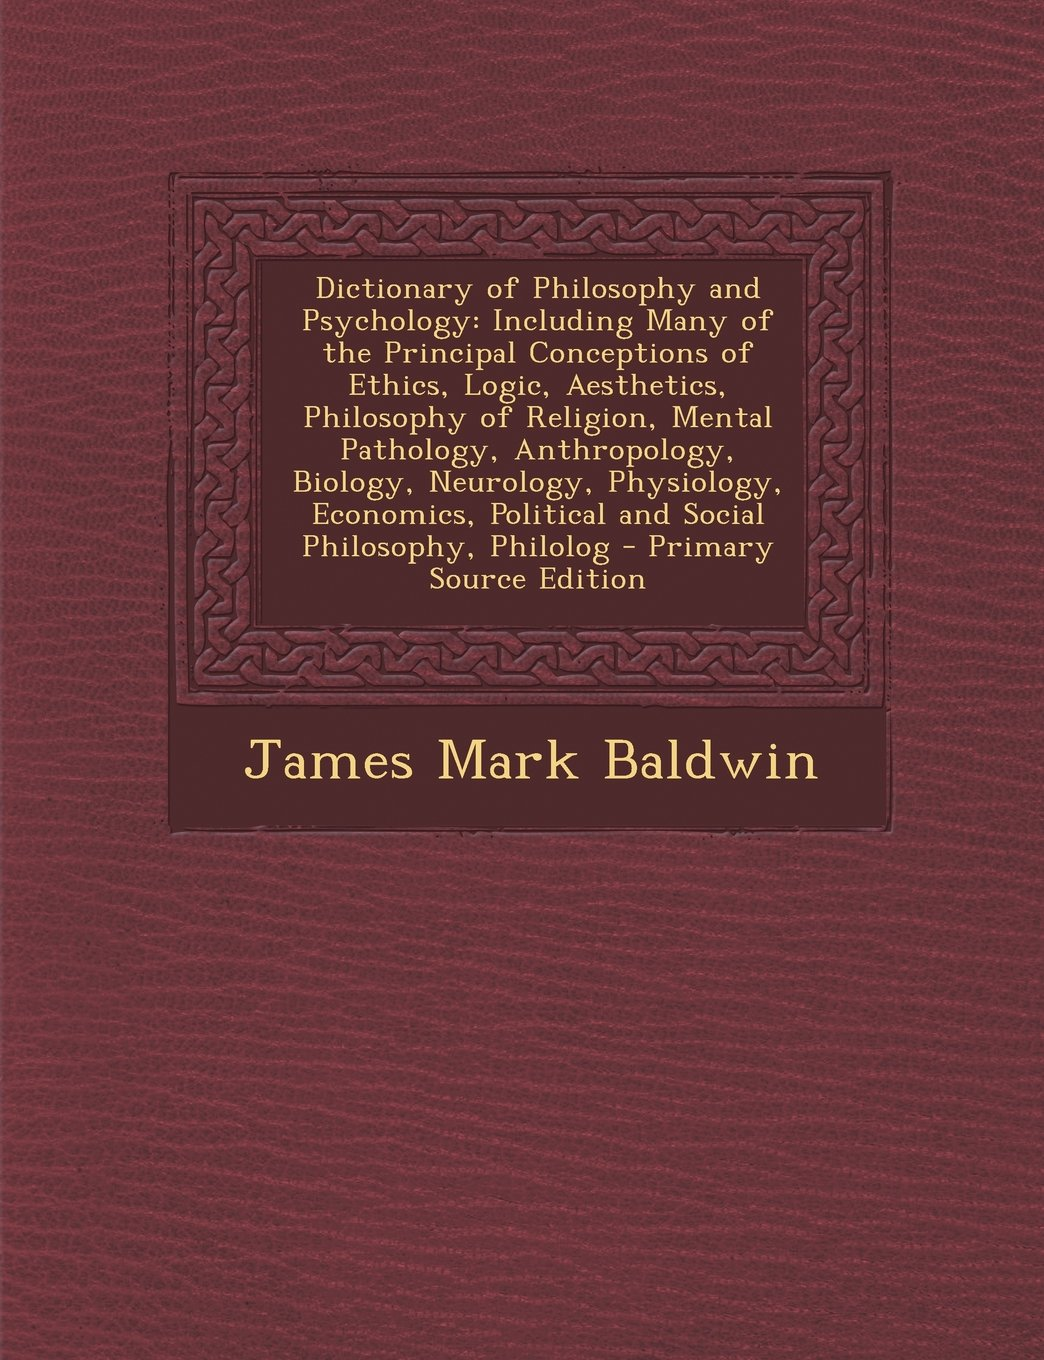 Read Online Dictionary of Philosophy and Psychology: Including Many of the Principal Conceptions of Ethics, Logic, Aesthetics, Philosophy of Religion, Mental ... Political and Social Philosophy, Philolog ebook